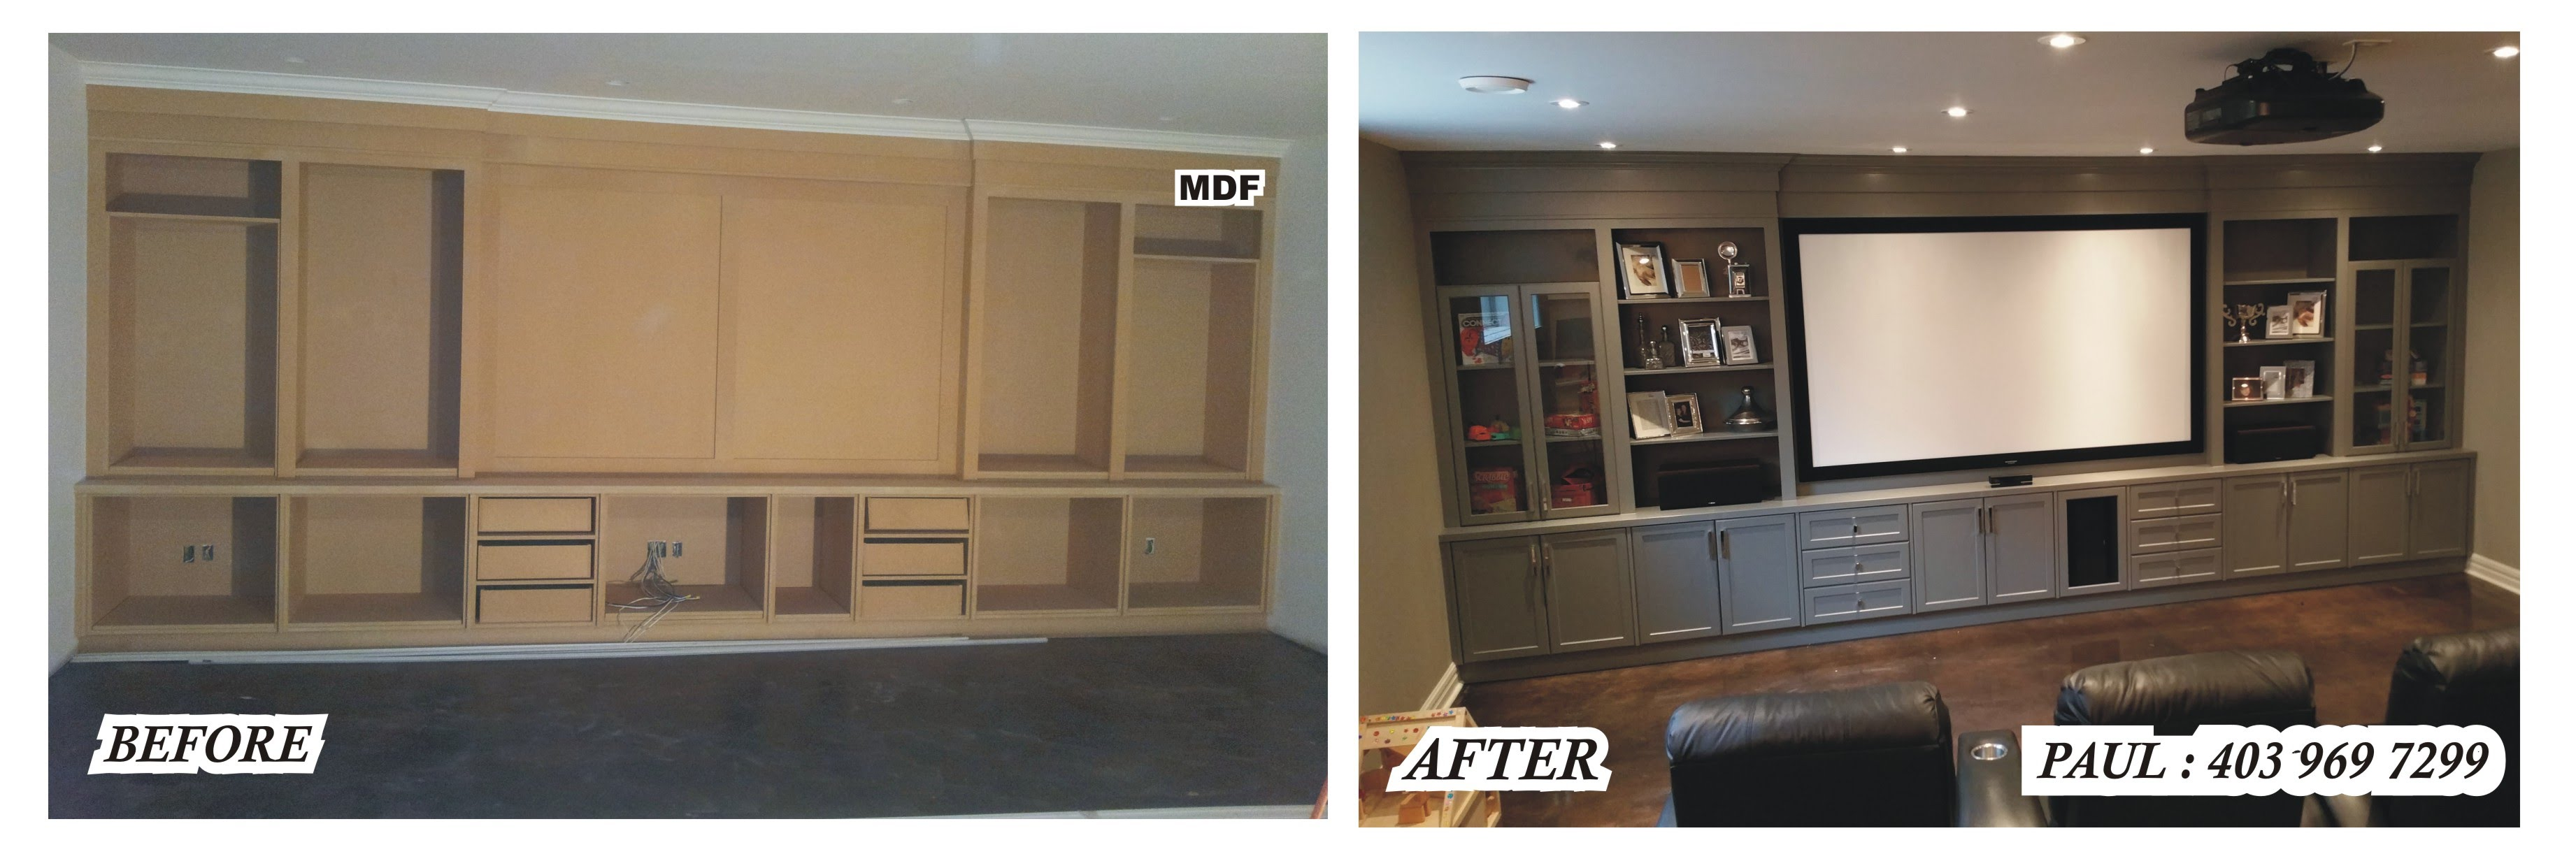 Cabinet door painting calgary cabinets matttroy for Ak kitchen cabinets calgary